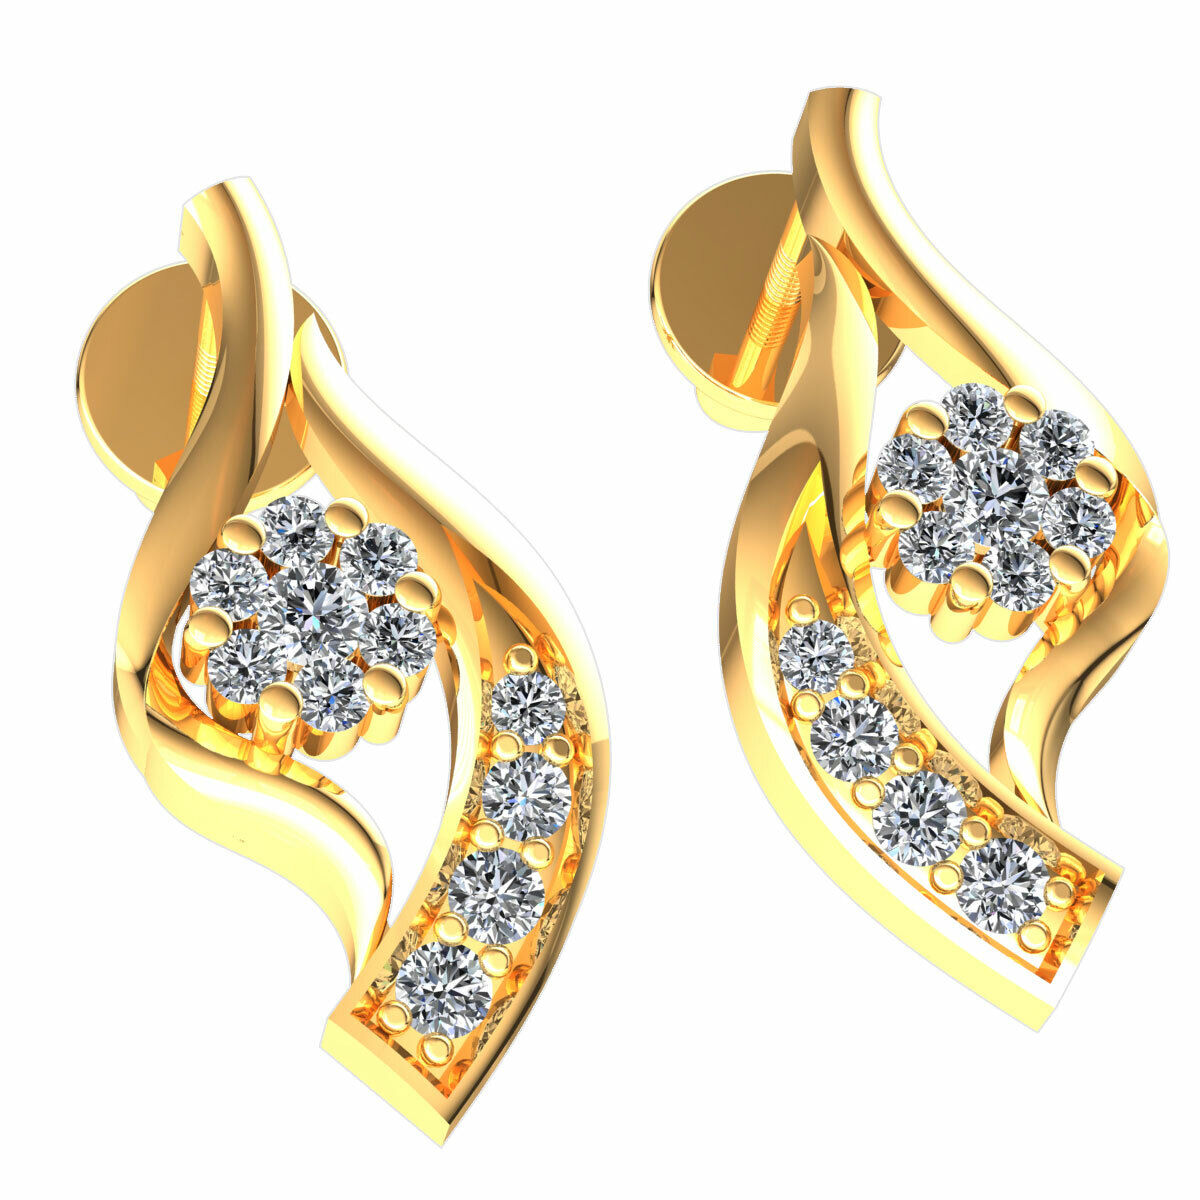 Real 0.25carat Round Cut Diamond Ladies Floral Cluster Earrings Solid 14K gold